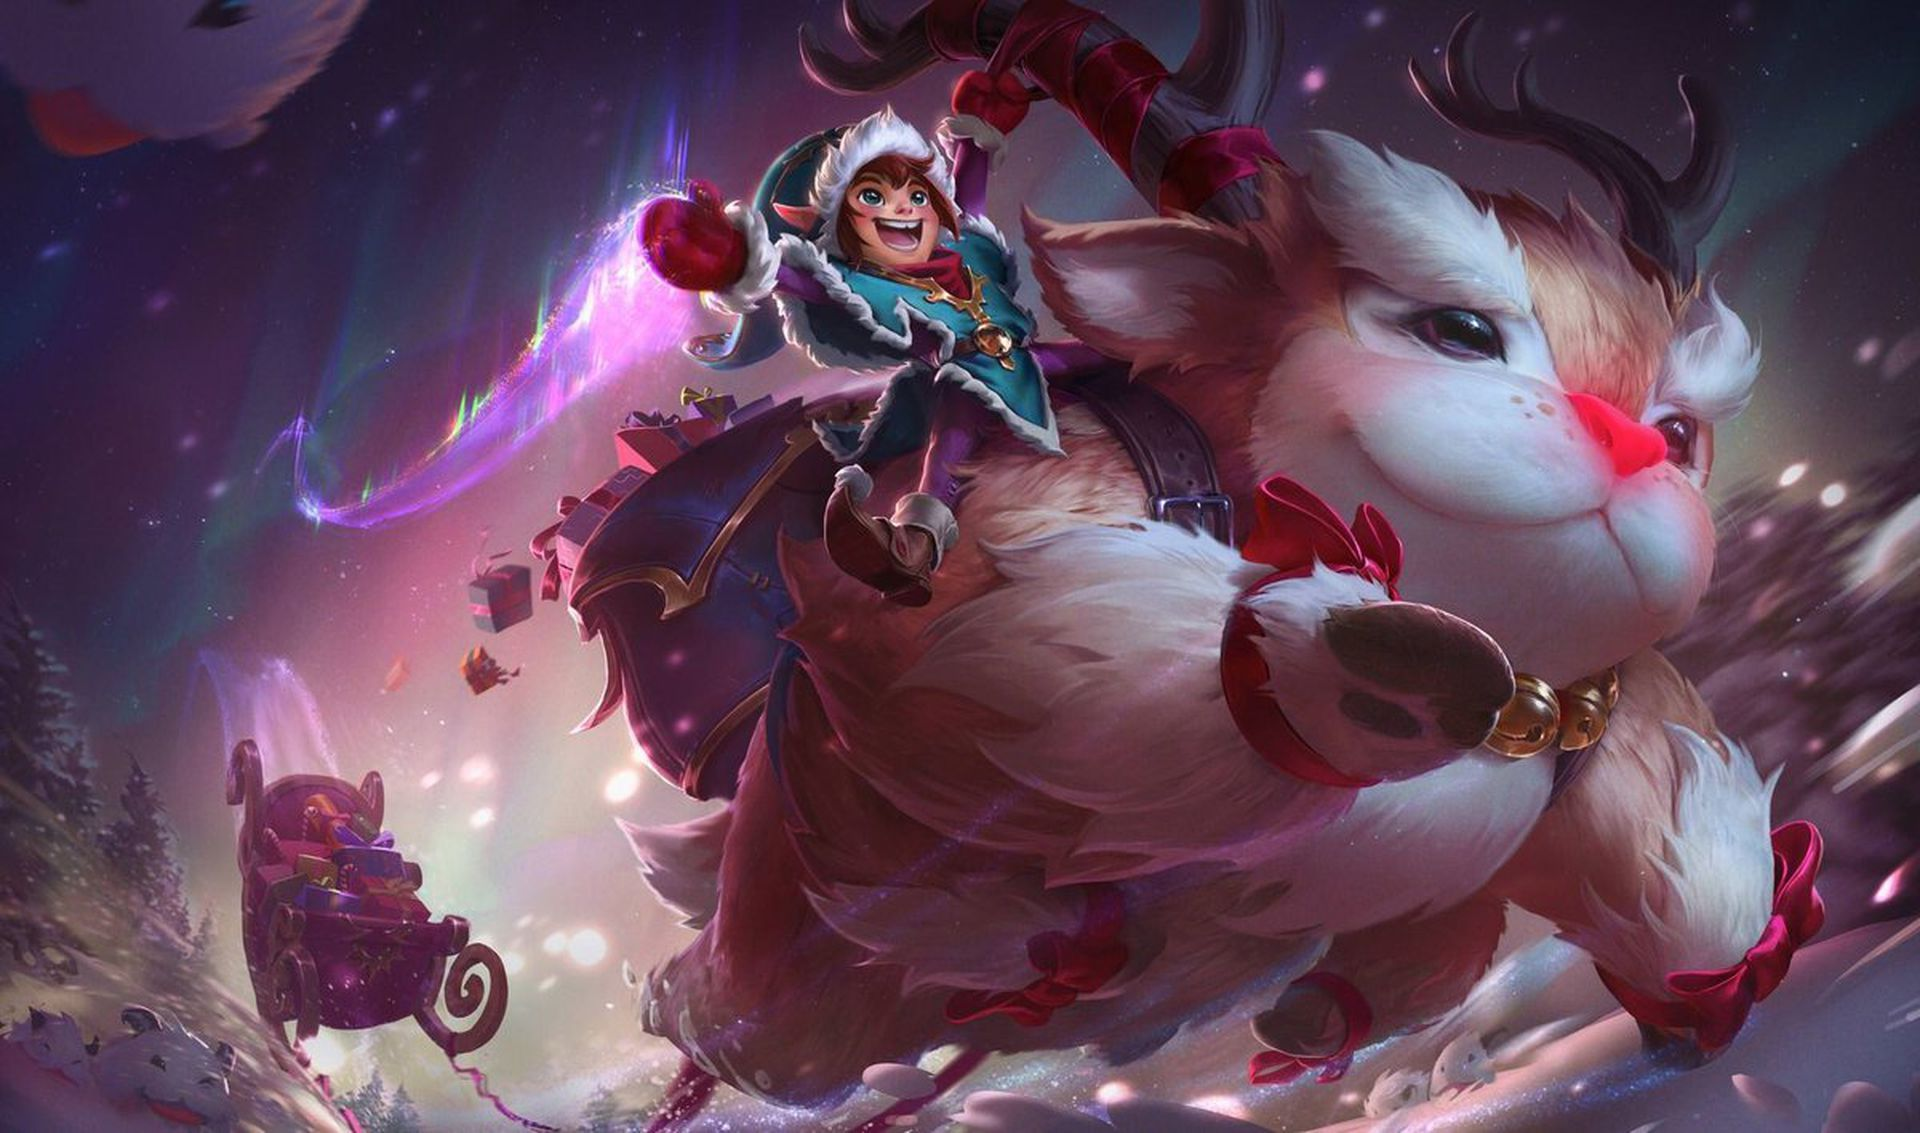 Nunu & Willump rework: Skins and splash art - The Rift